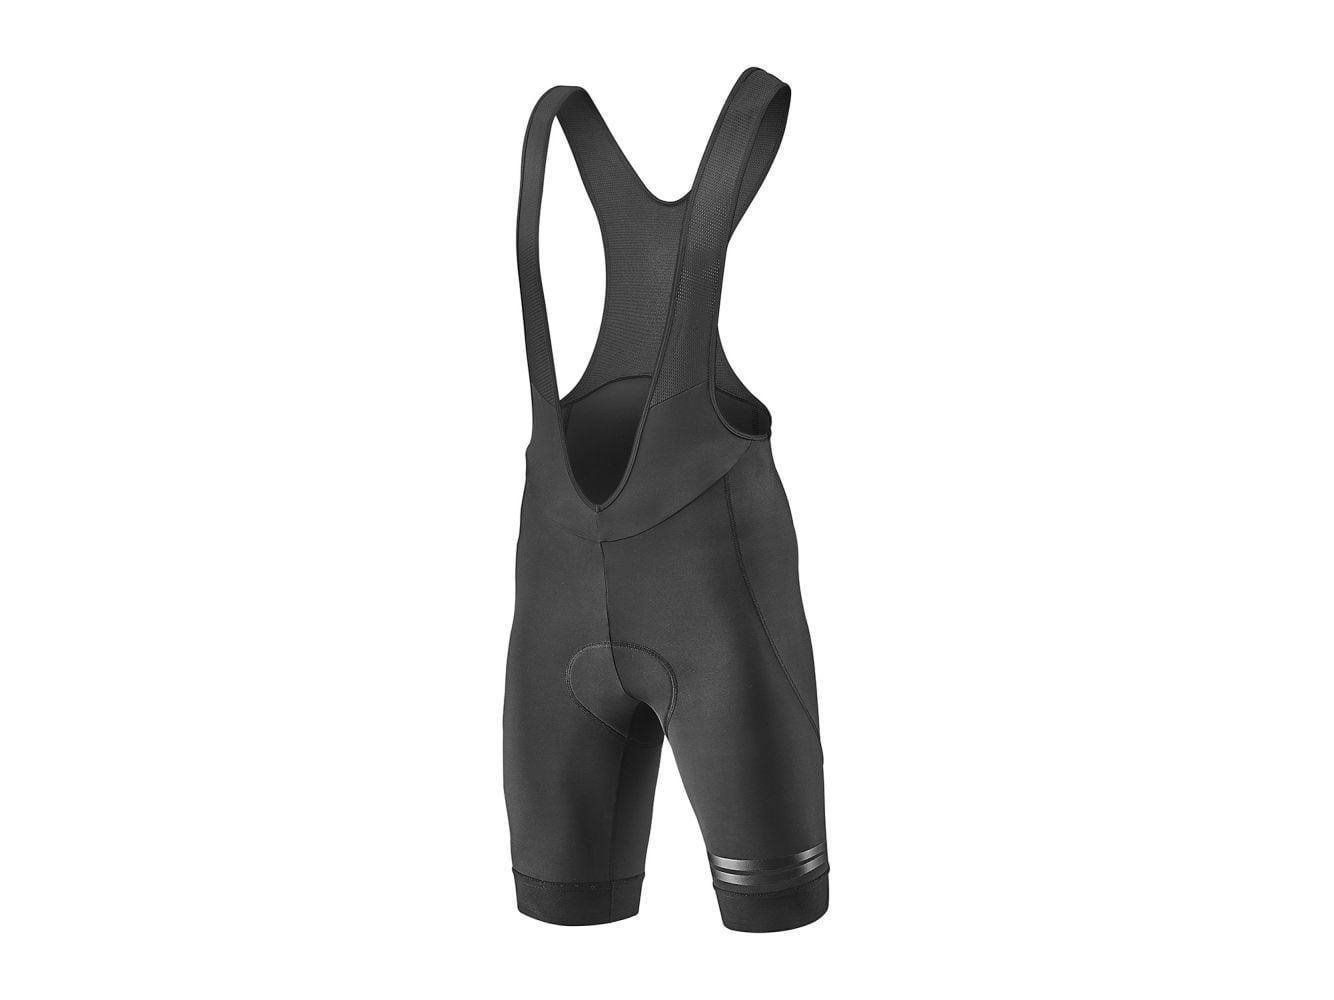 Giant Podium Mens Cycling Bib Shorts - Black, Medium